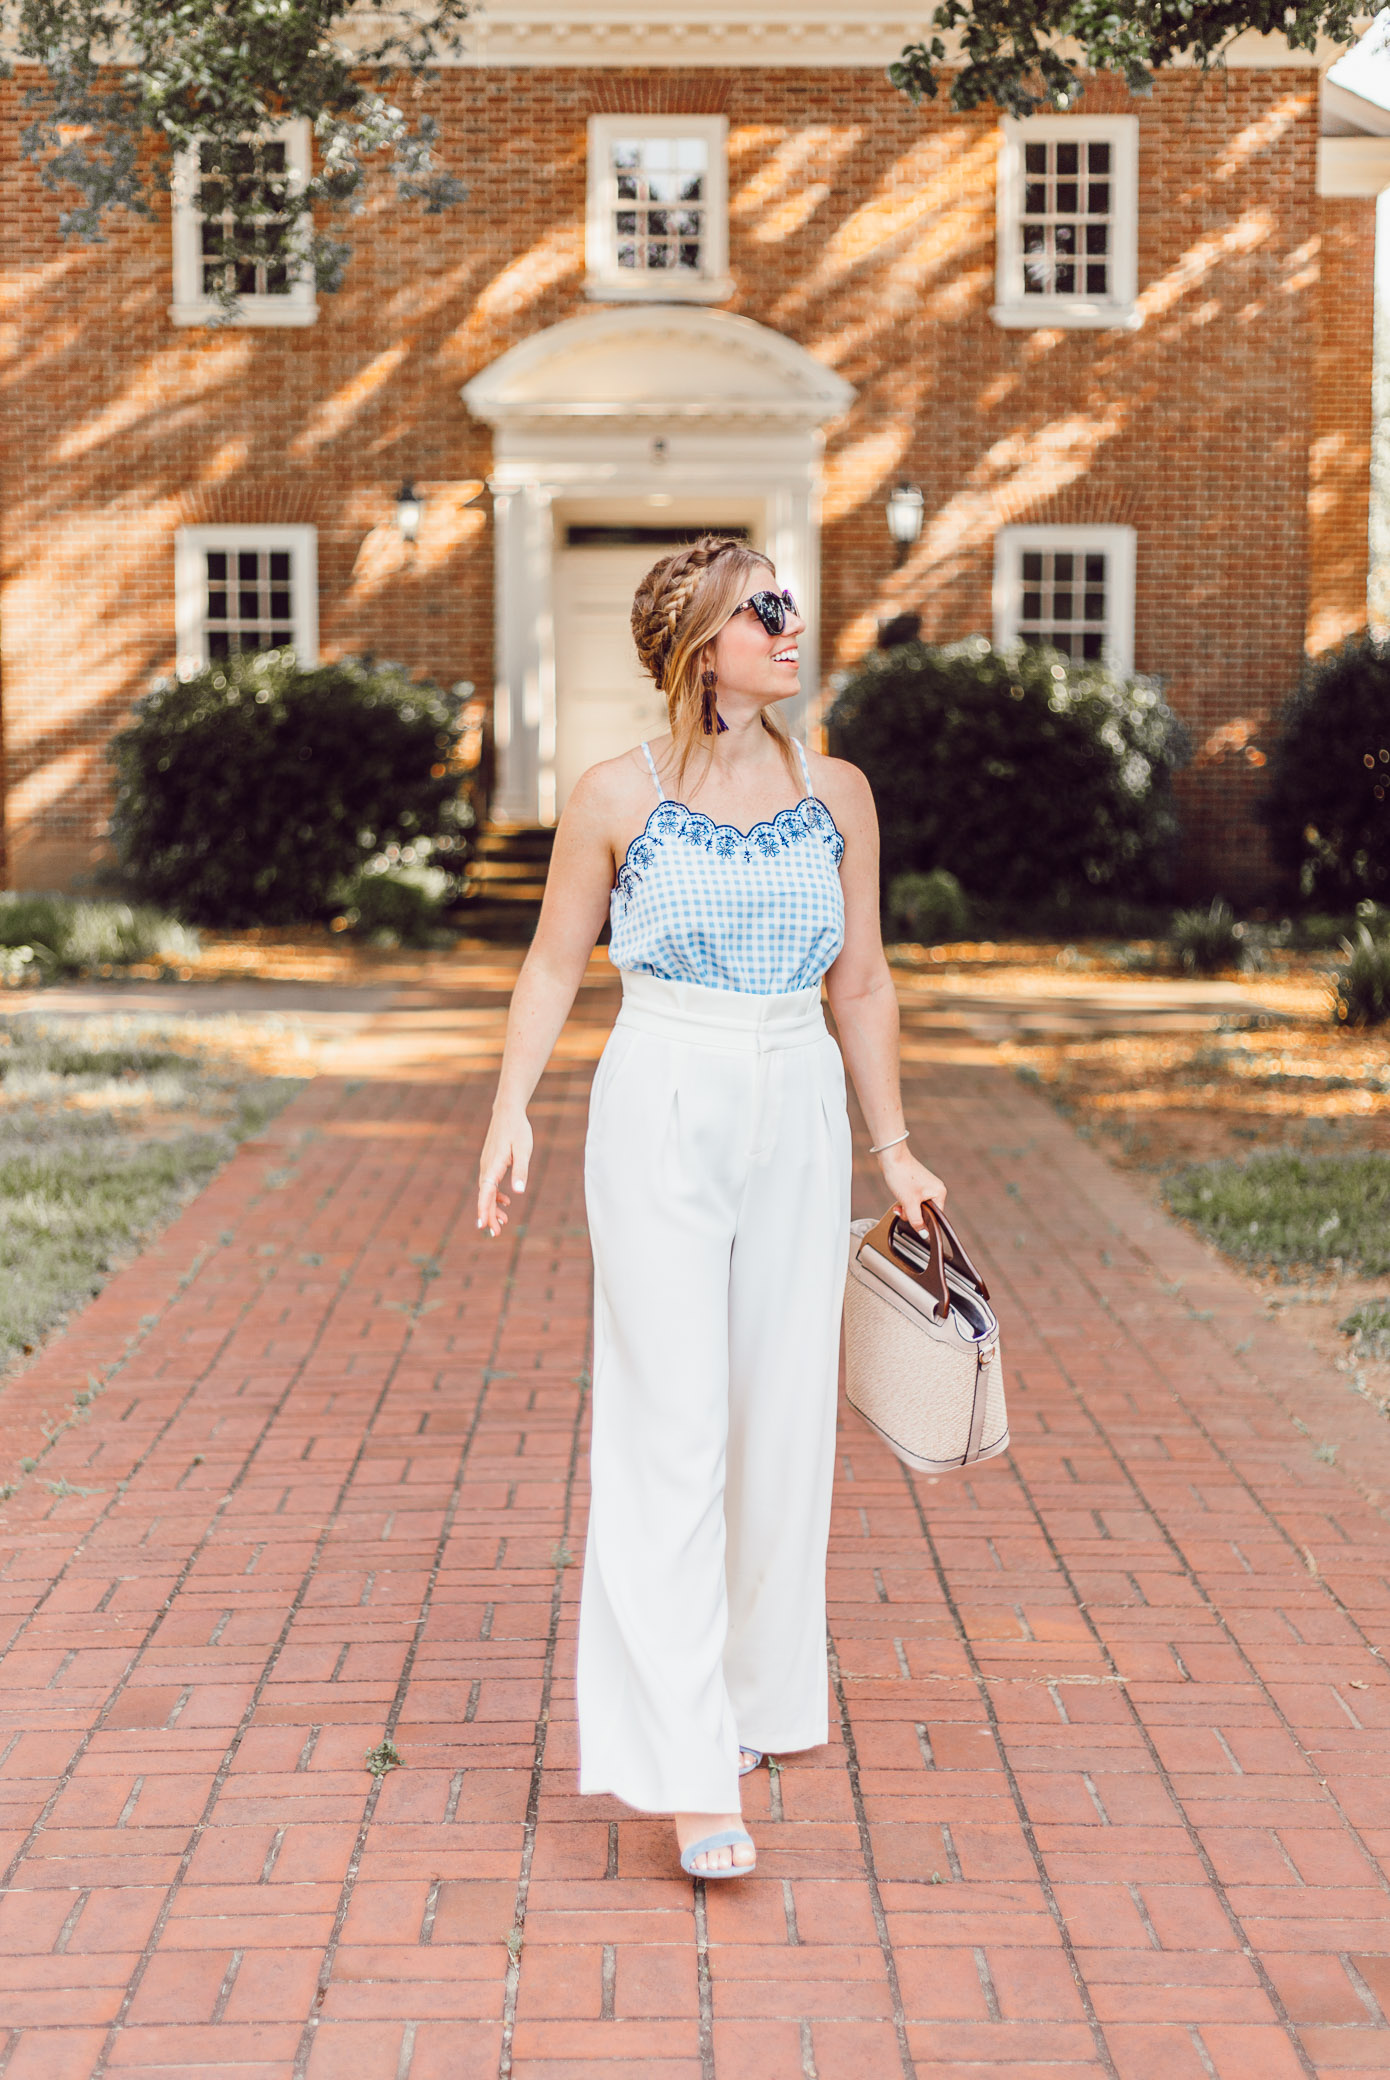 Summer Weekend Style from Friday to Sunday featured by Louella Reese | Gingham Tank, White Wide Leg Pants for Summer